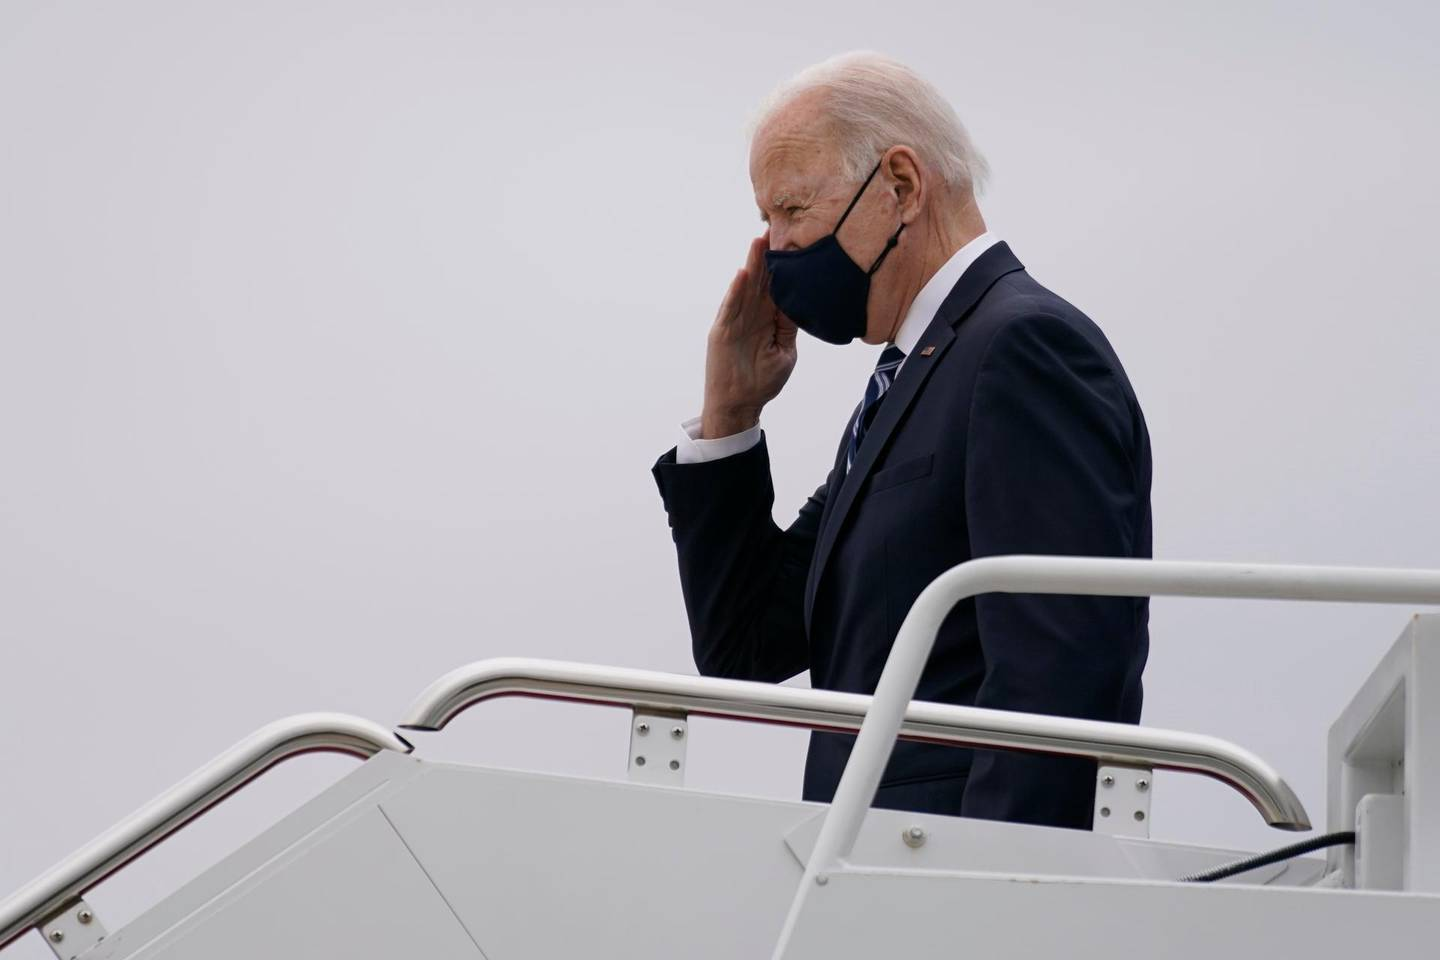 President Joe Biden pauses to salute as he boards Air Force One at Andrews Air Force Base, Md., Tuesday, March 16, 2021, en route to Philadelphia International Airport in Philadelphia. (AP Photo/Carolyn Kaster)